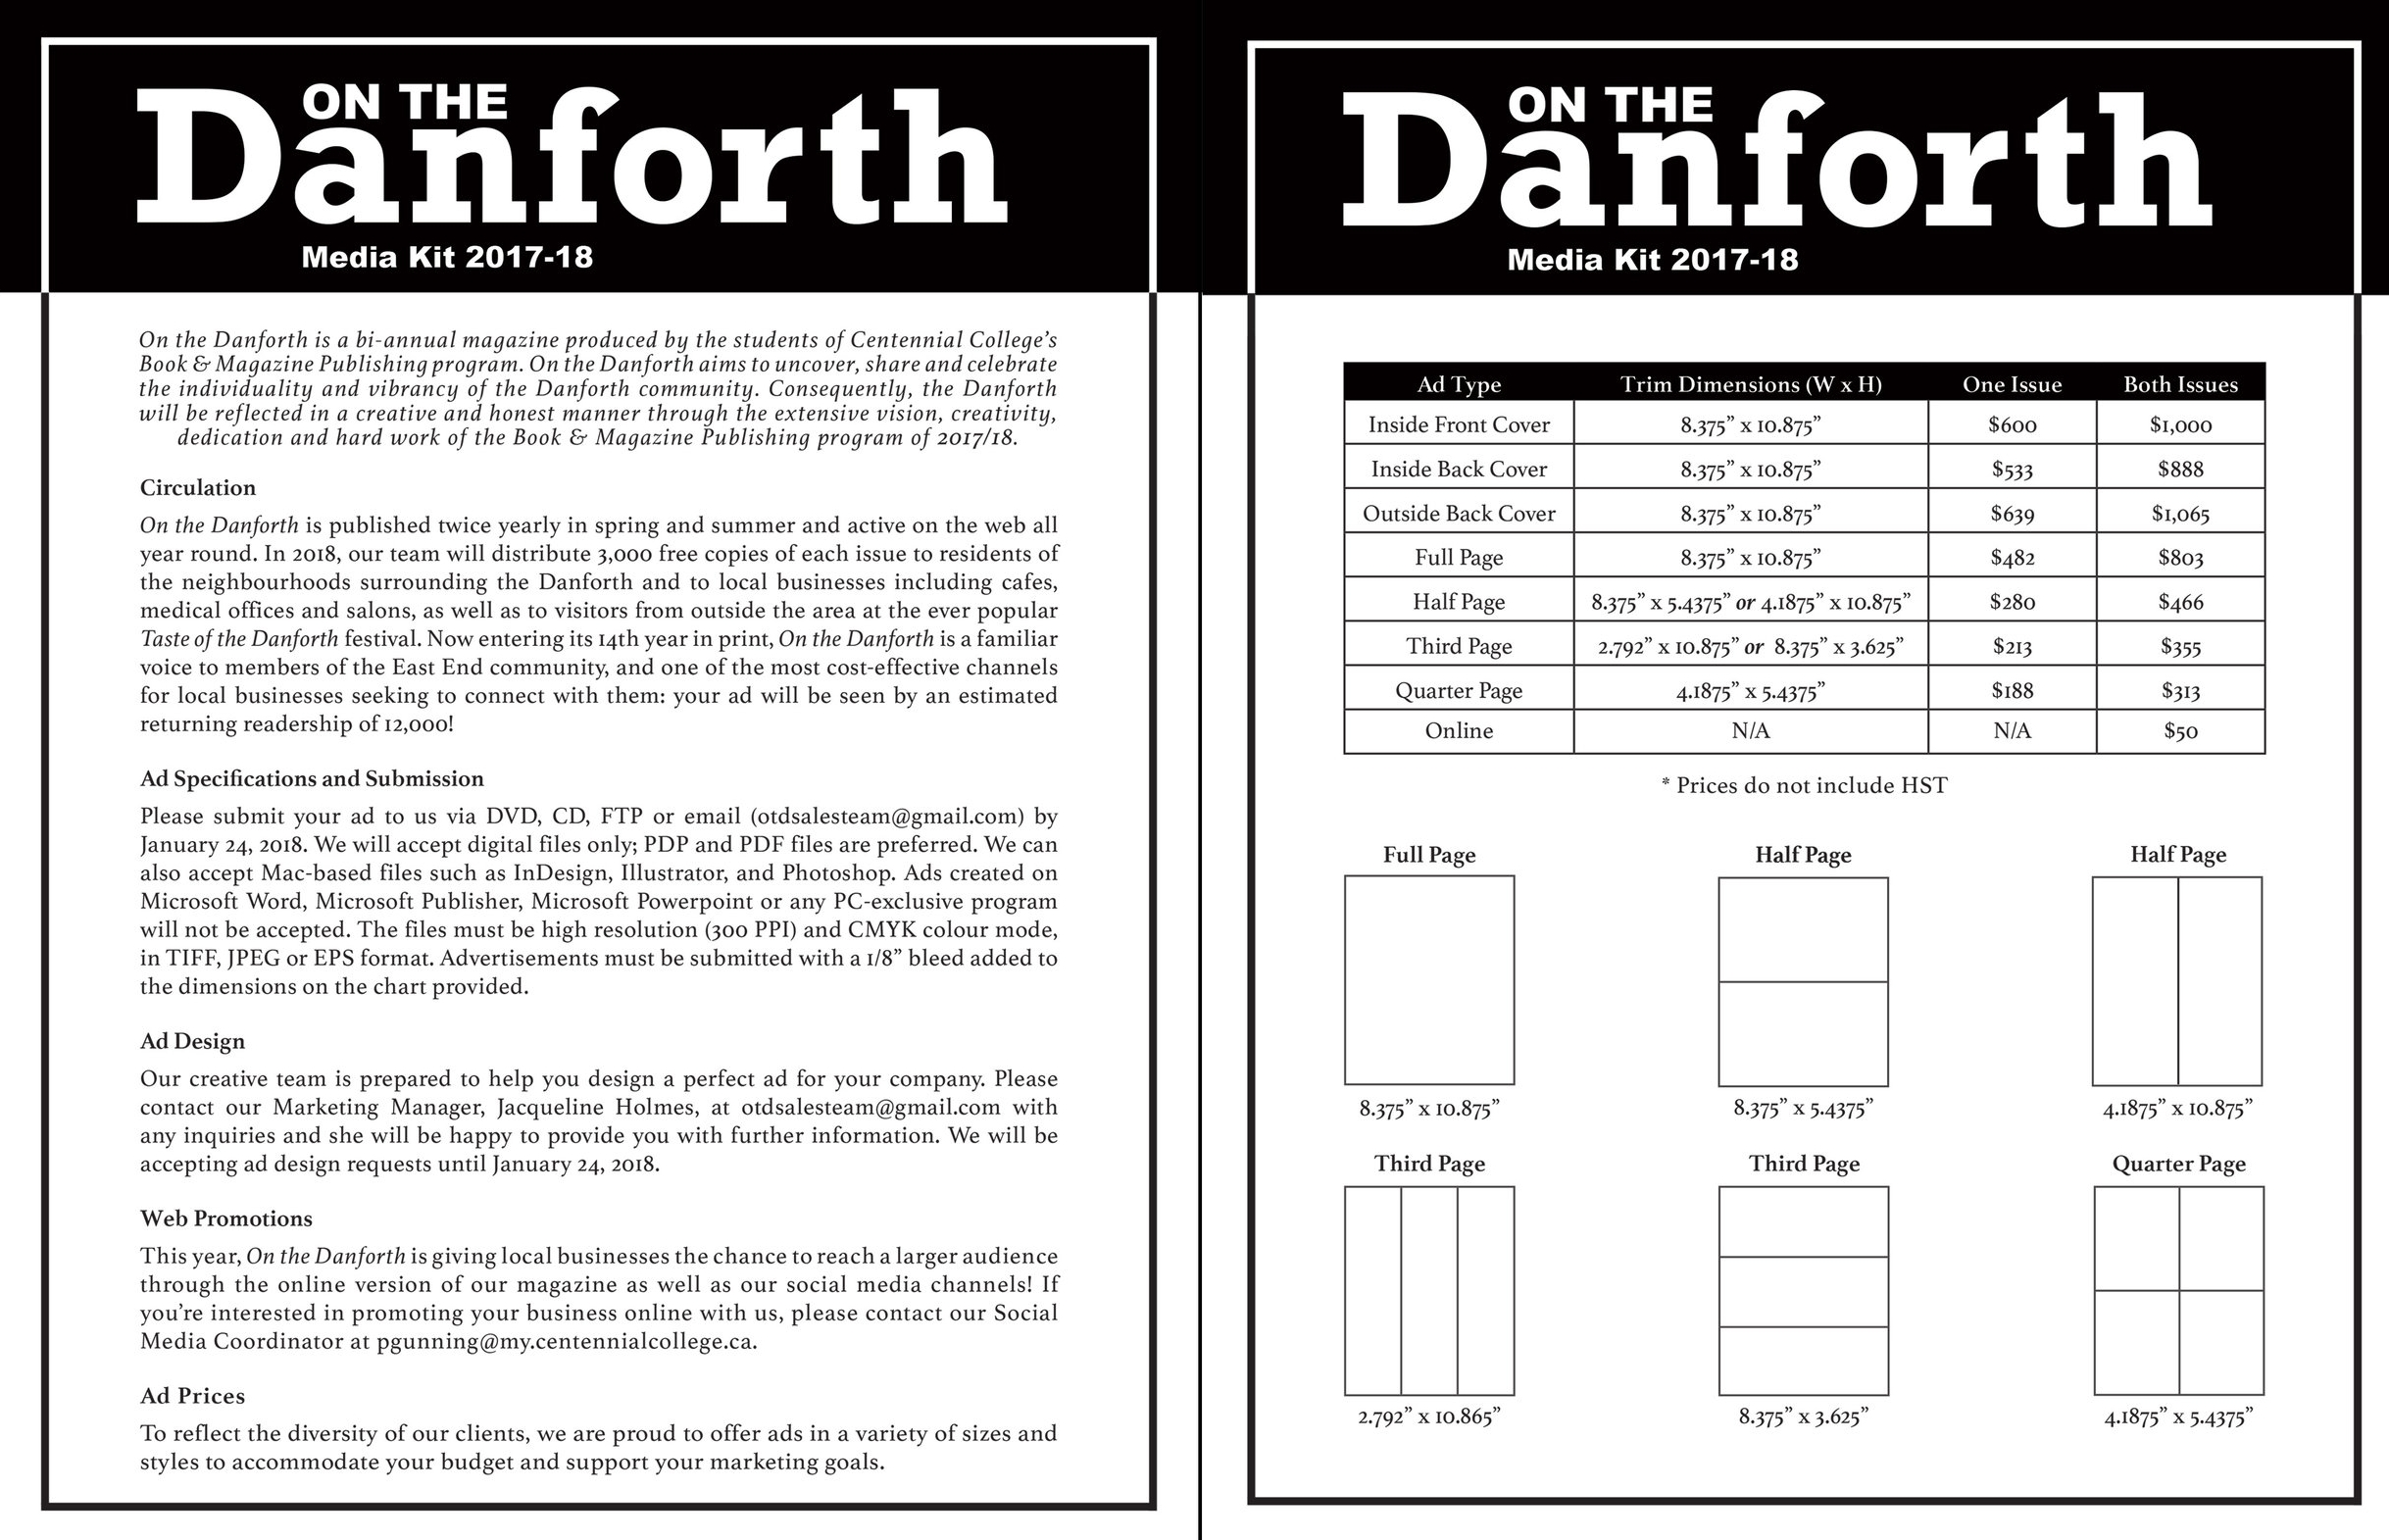 Media Kit: On the Danforth